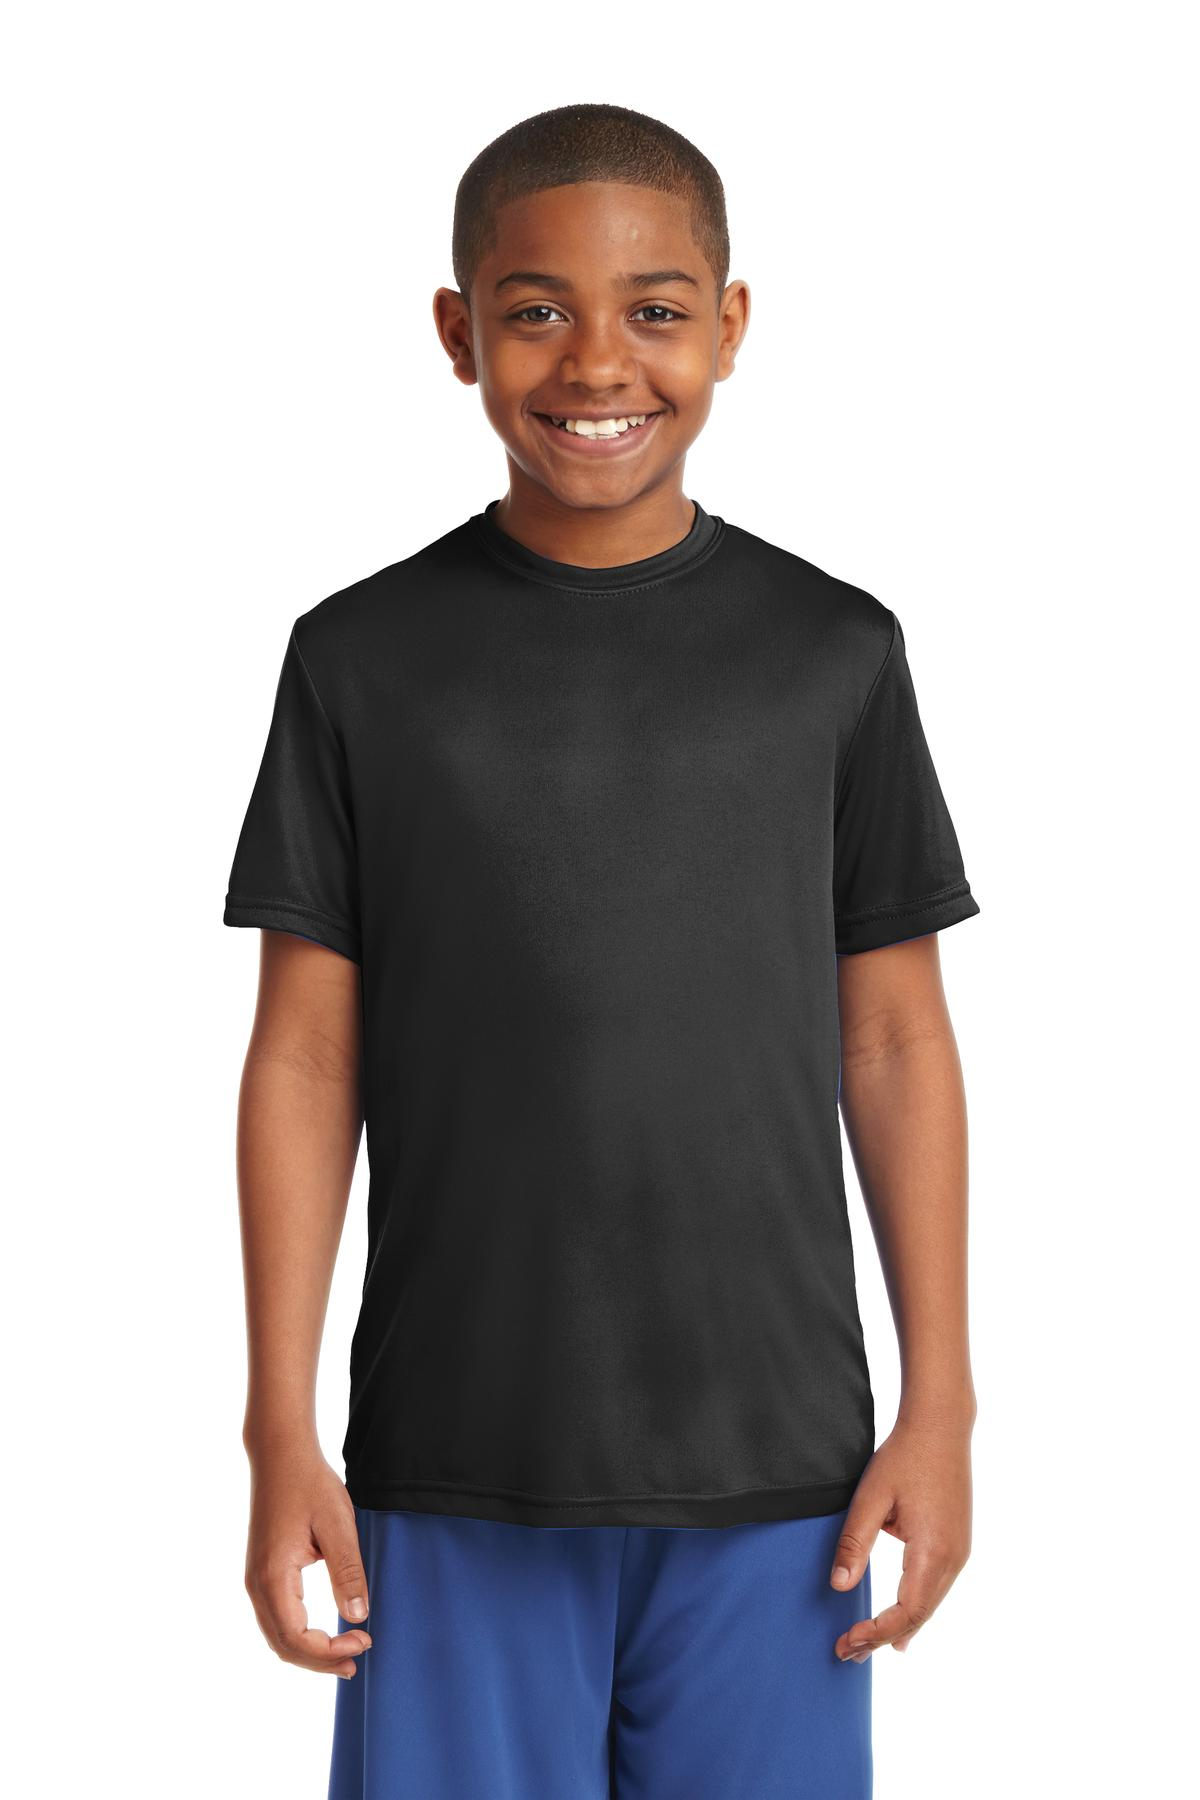 Sport-Tek ®  Youth PosiCharge ®  Competitor™ Tee. YST350 - Black